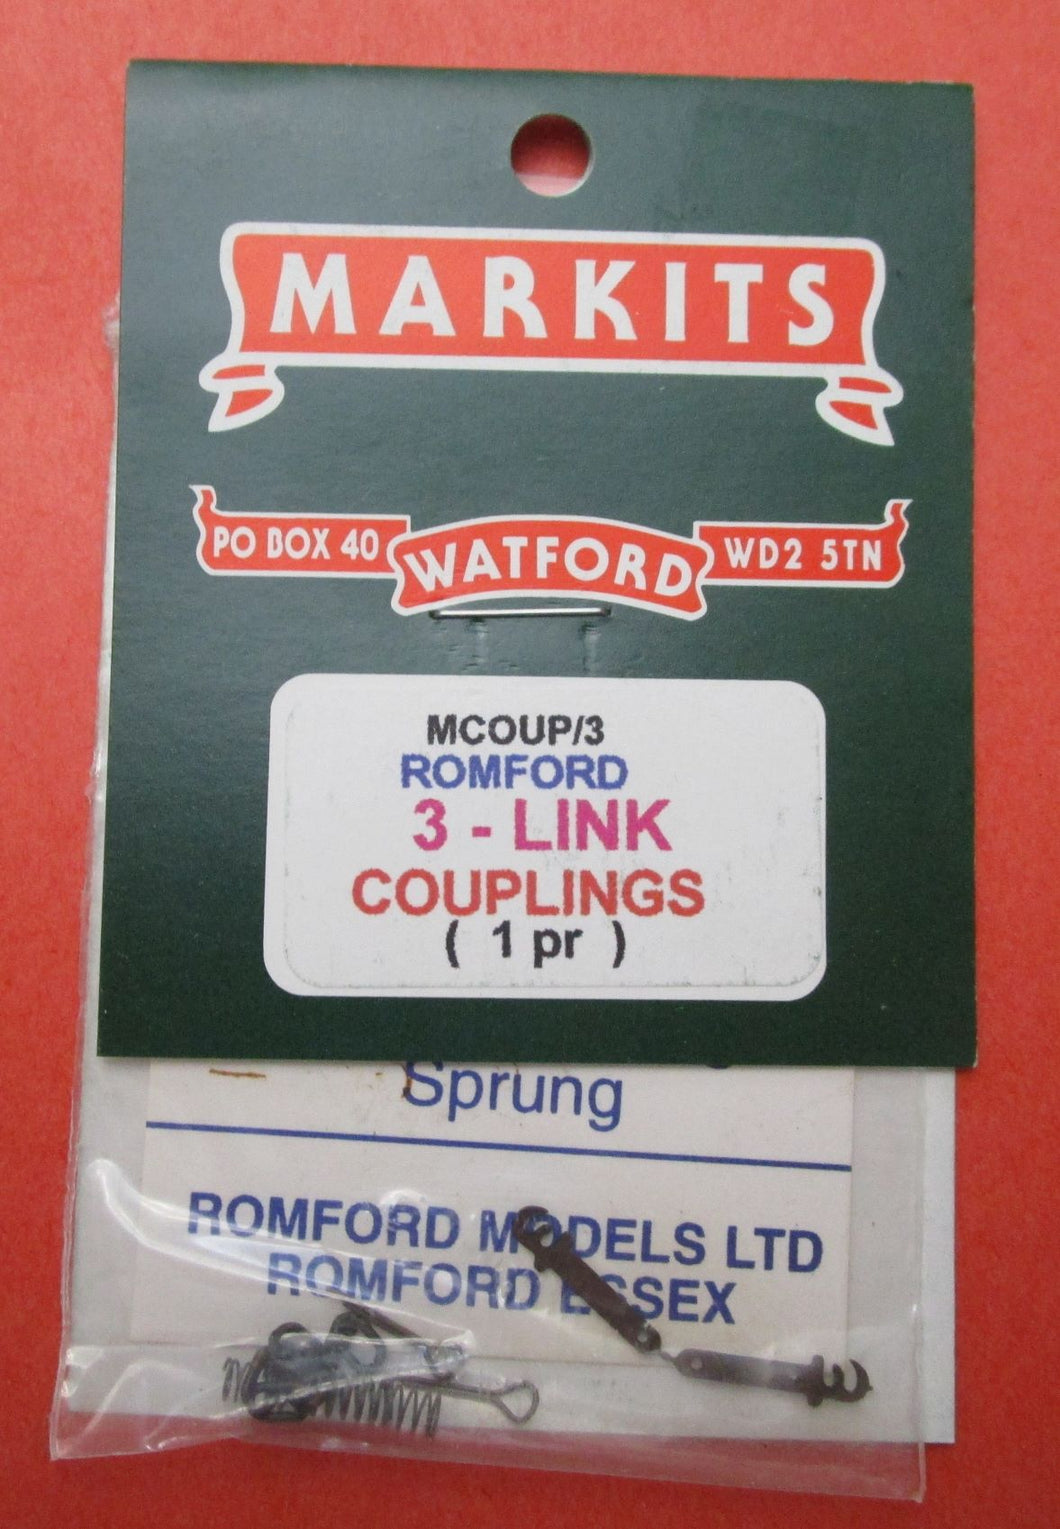 MCOUP/3 Couplings 3-Link 1 Pr